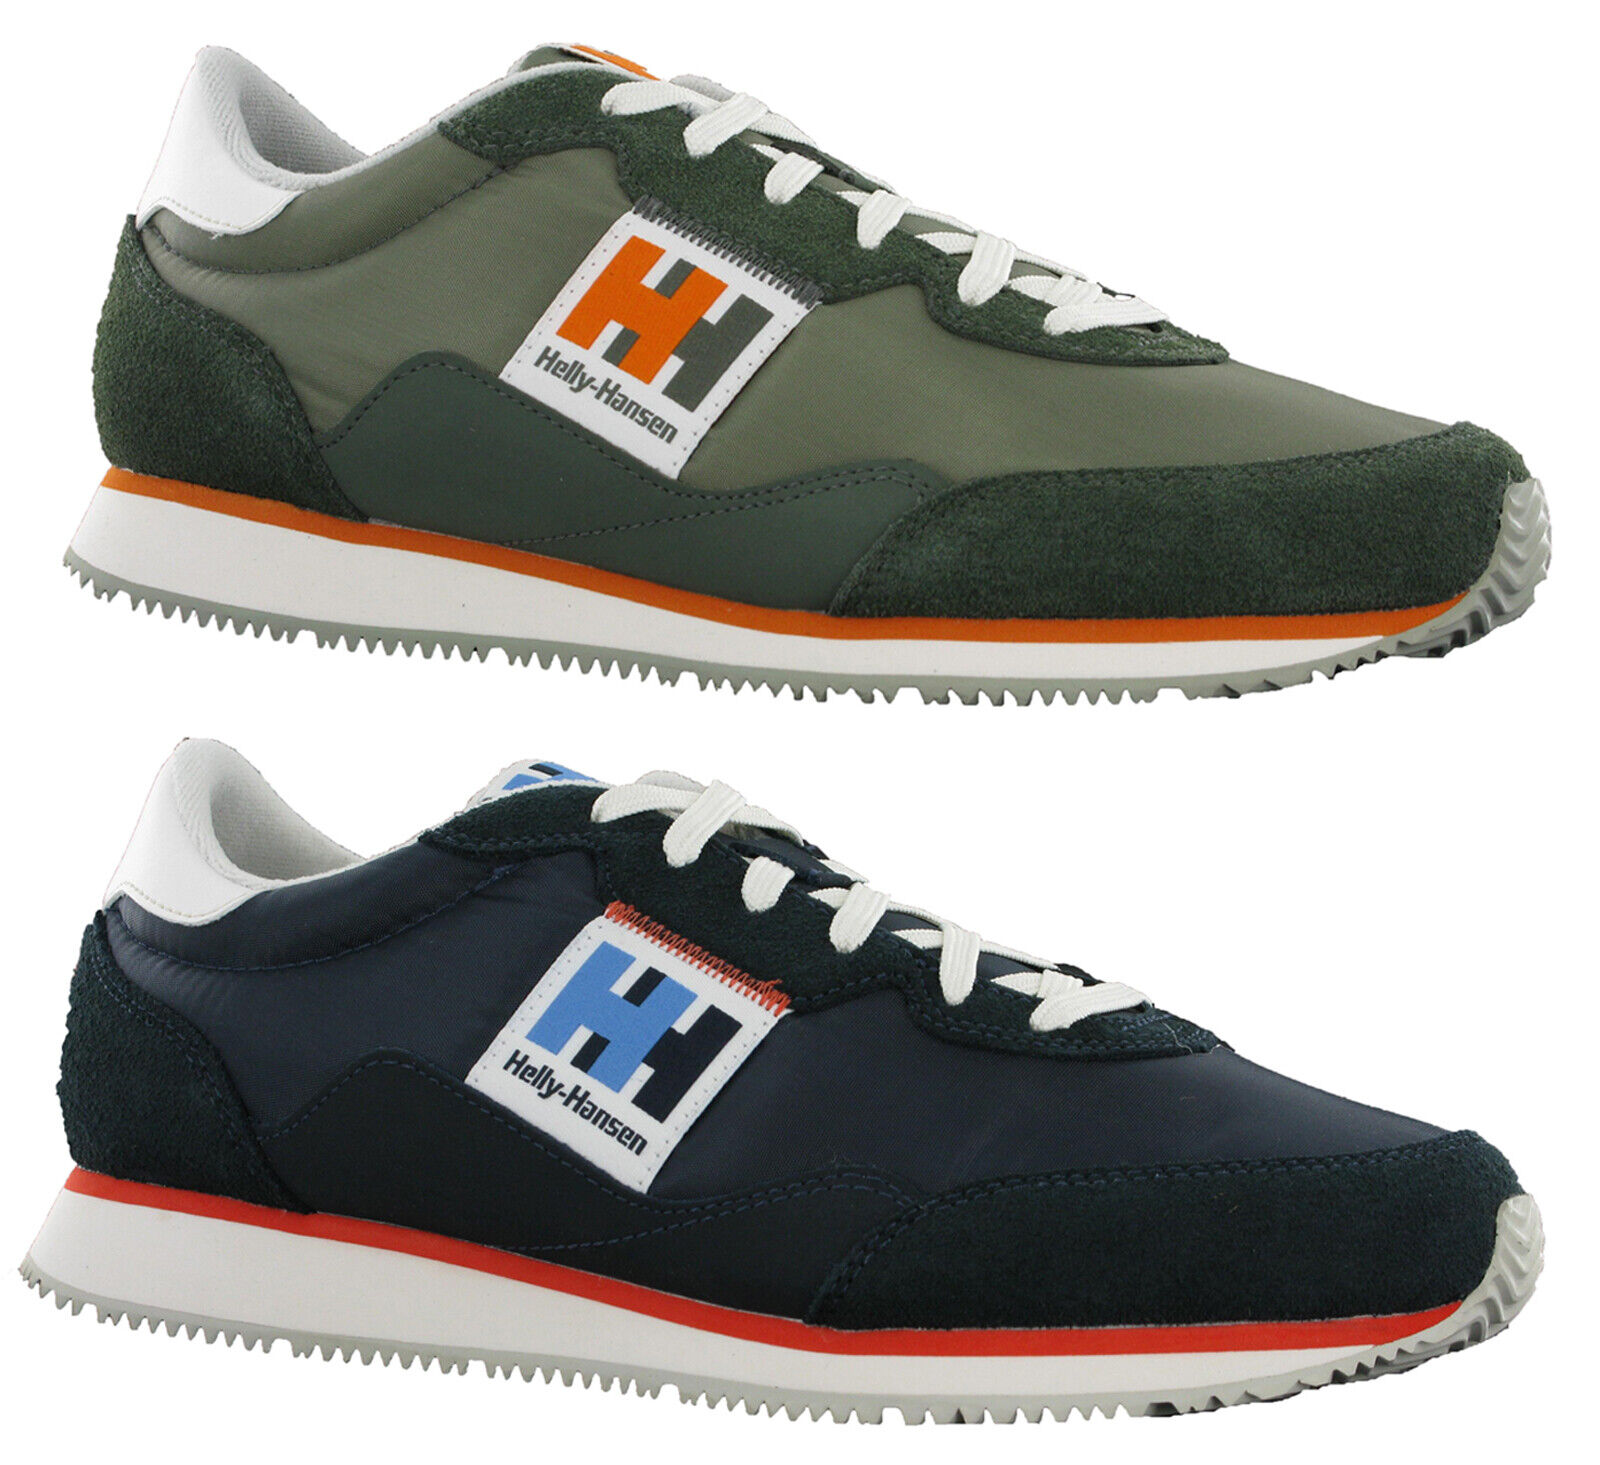 Helly Hansen Mens Turnschuhe Trainers schuhe Lace Up Ripples Low Cut Turnschuhe UK7-11